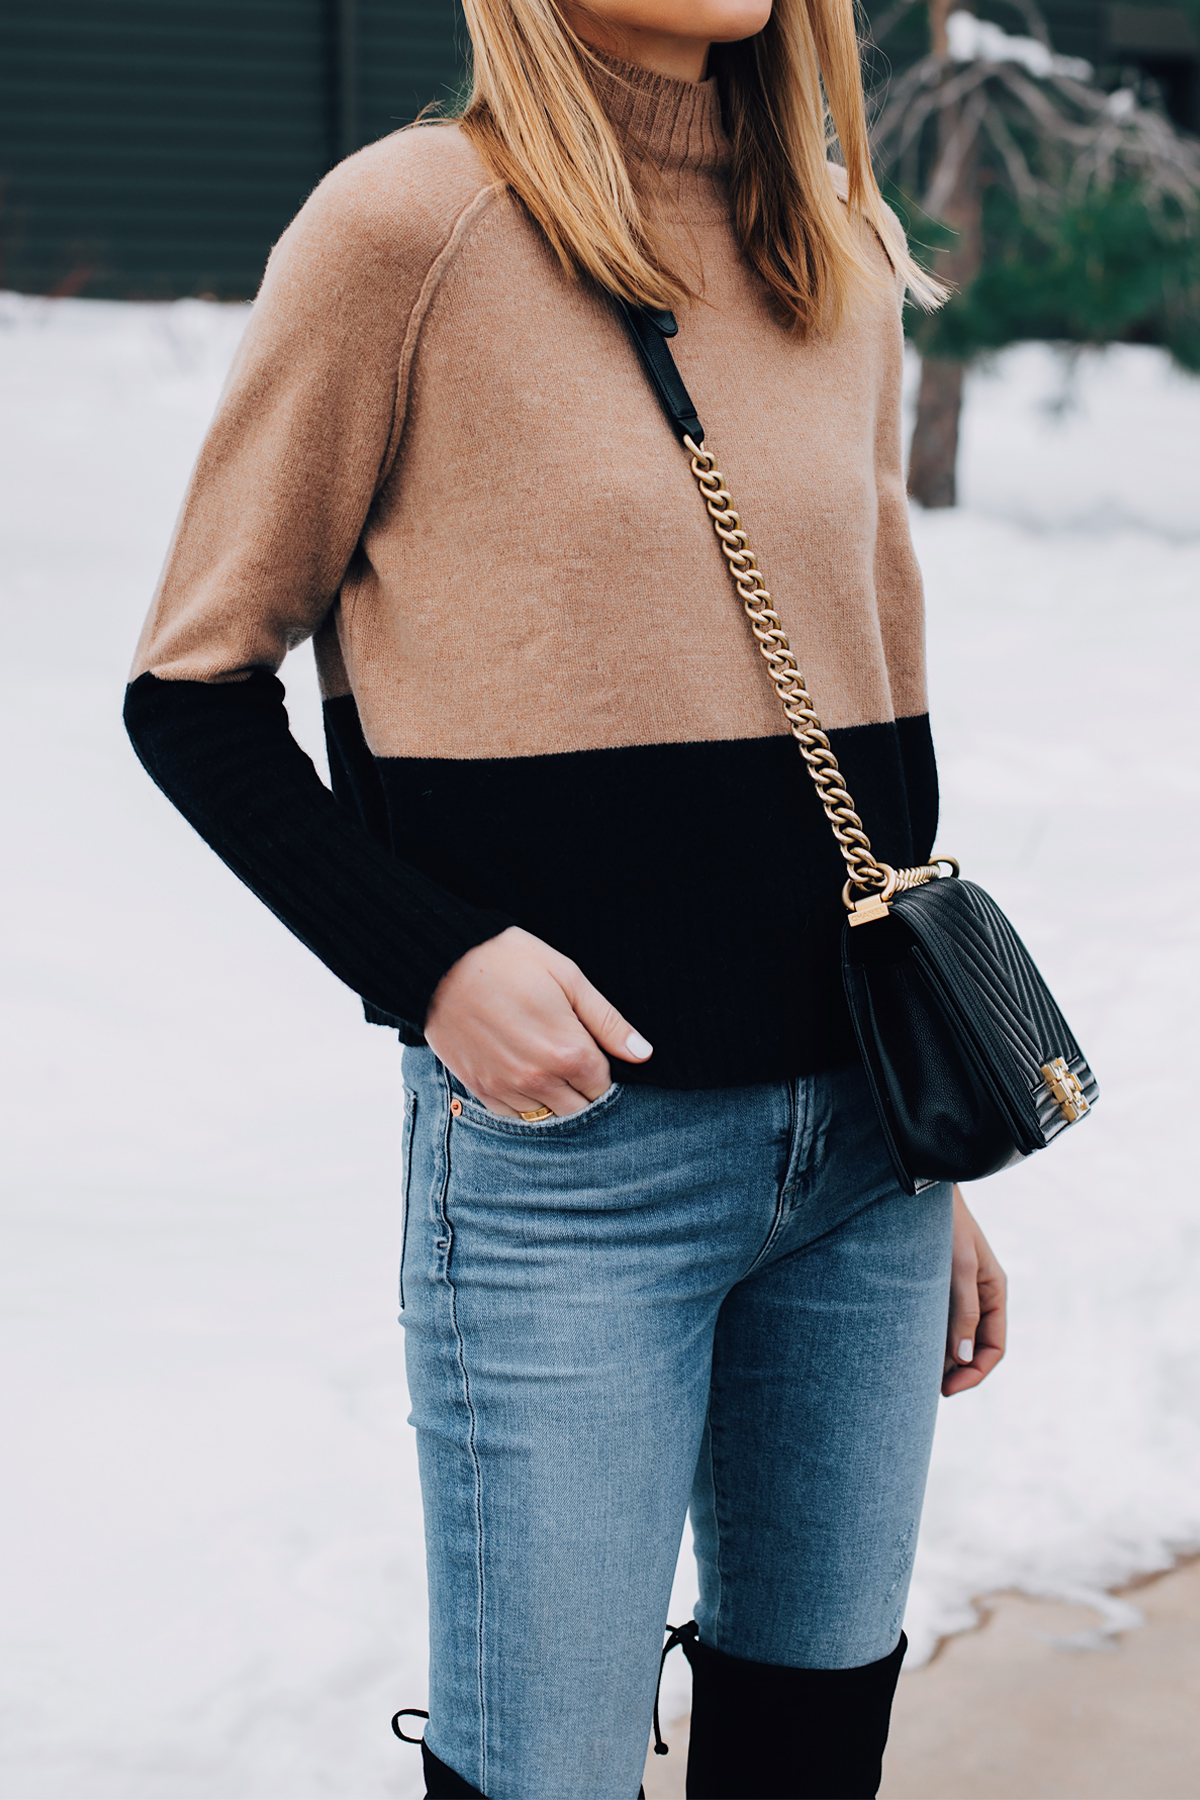 Blonde Woman Wearing Tan Black Color Block Sweater Denim Skinny Jeans Chanel Black Boy Handbag Fashion Jackson San Diego Fashion Blogger Winter Style